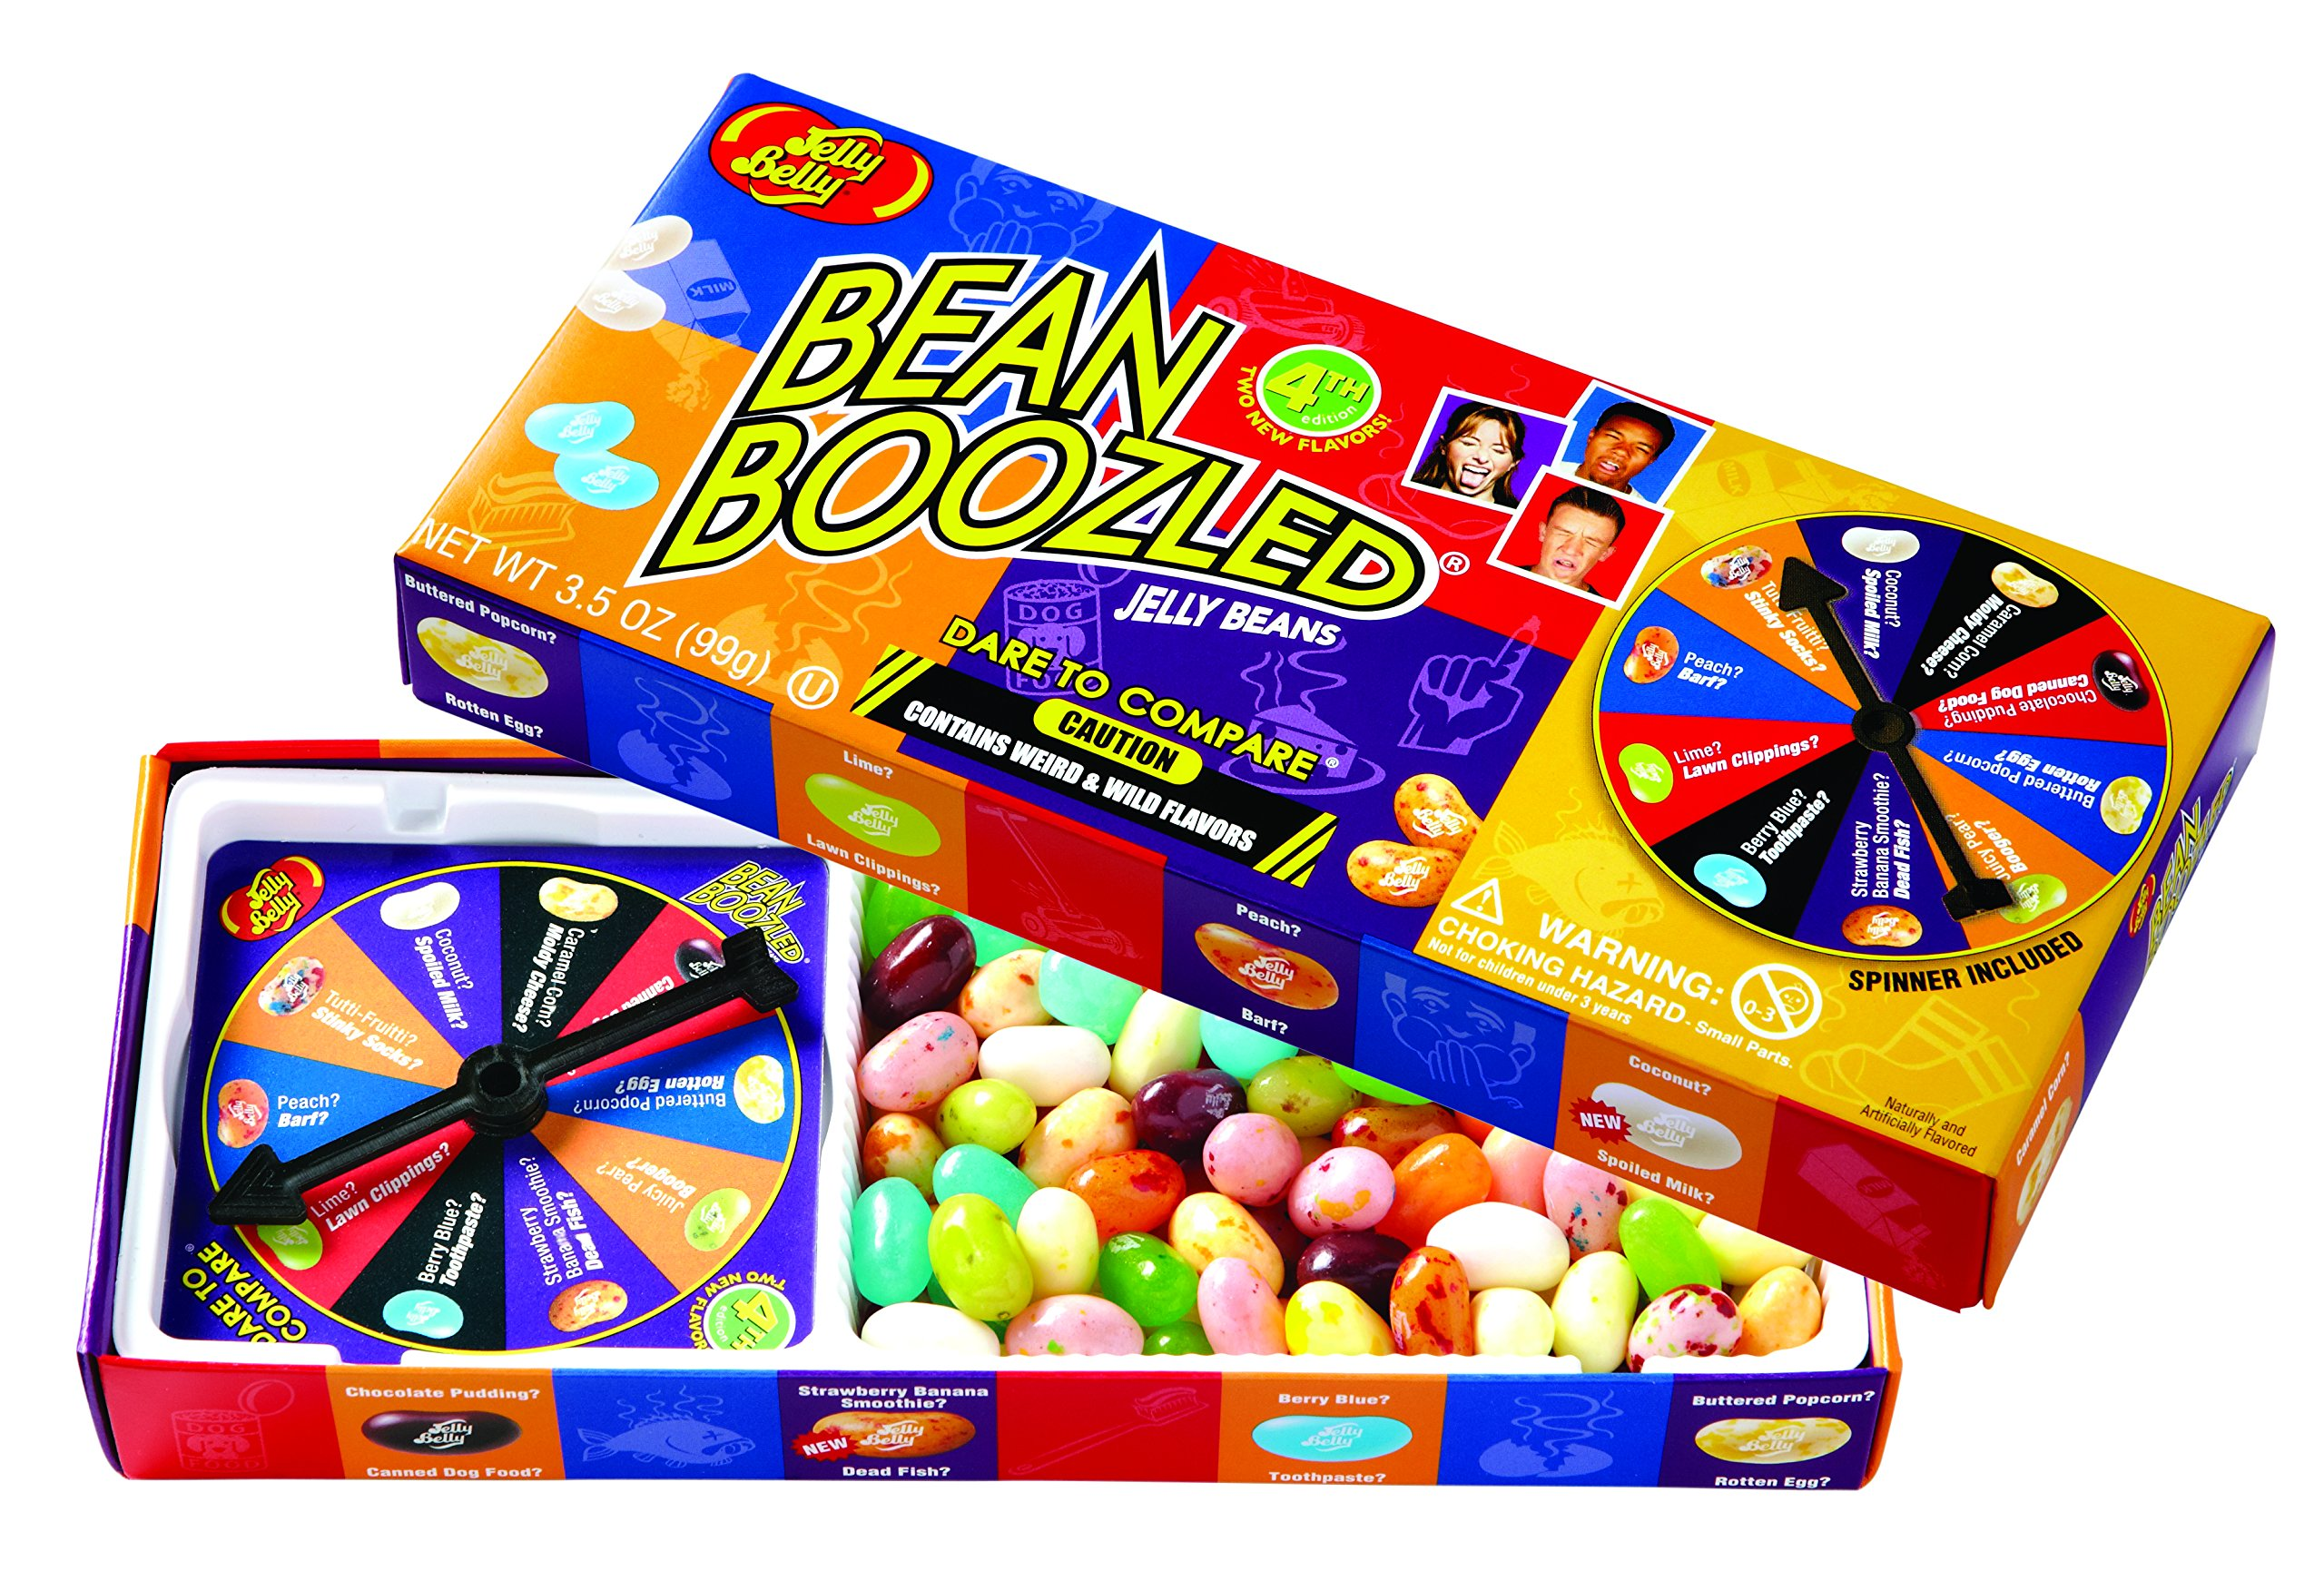 Jelly Belly BeanBoozled Jelly Beans Spinner Gift Box, 4th Edition, 3.5-oz, 10 Pack